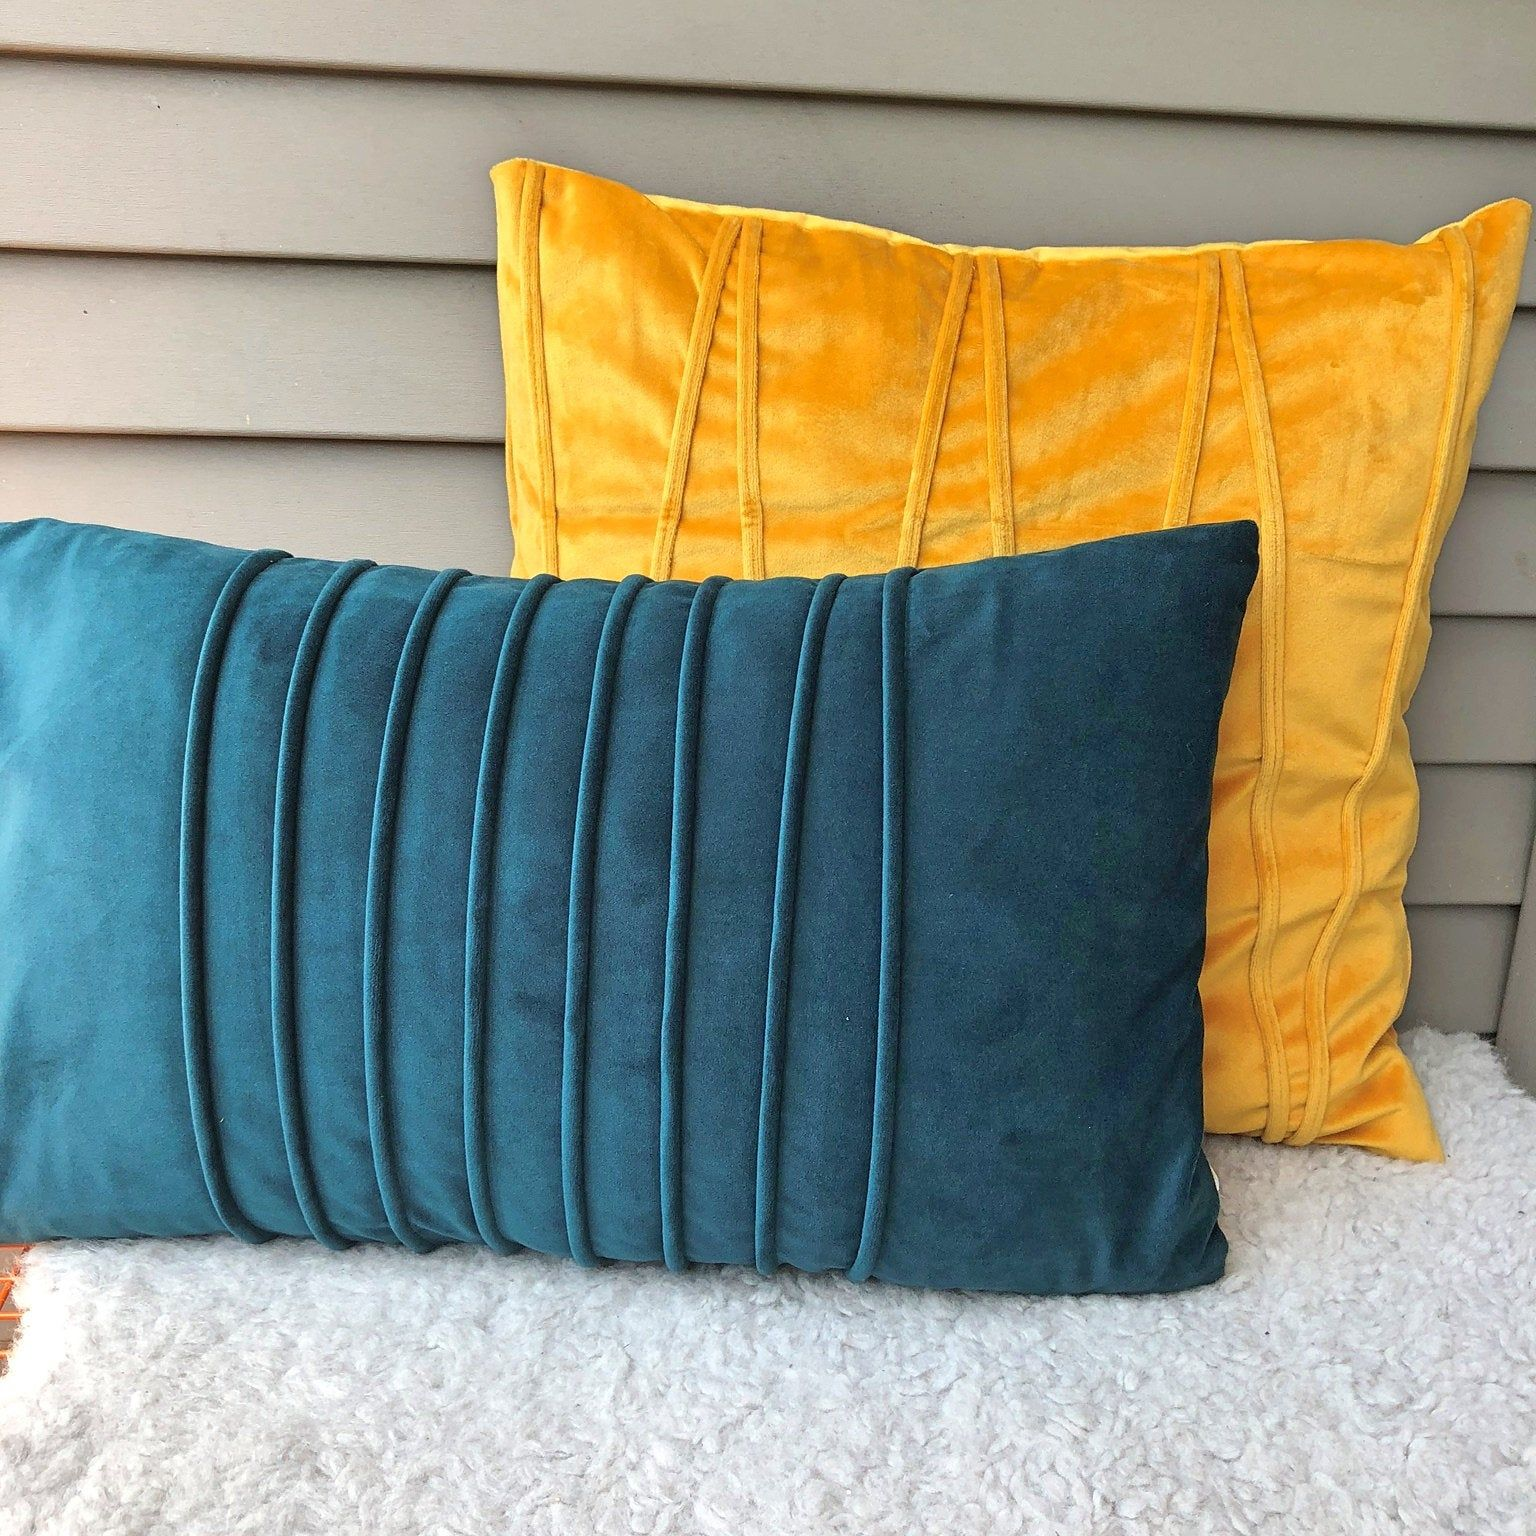 Velvet Fabric Throw Pillow Cover Soft Stylish Geometric Cushion Case Solid Color